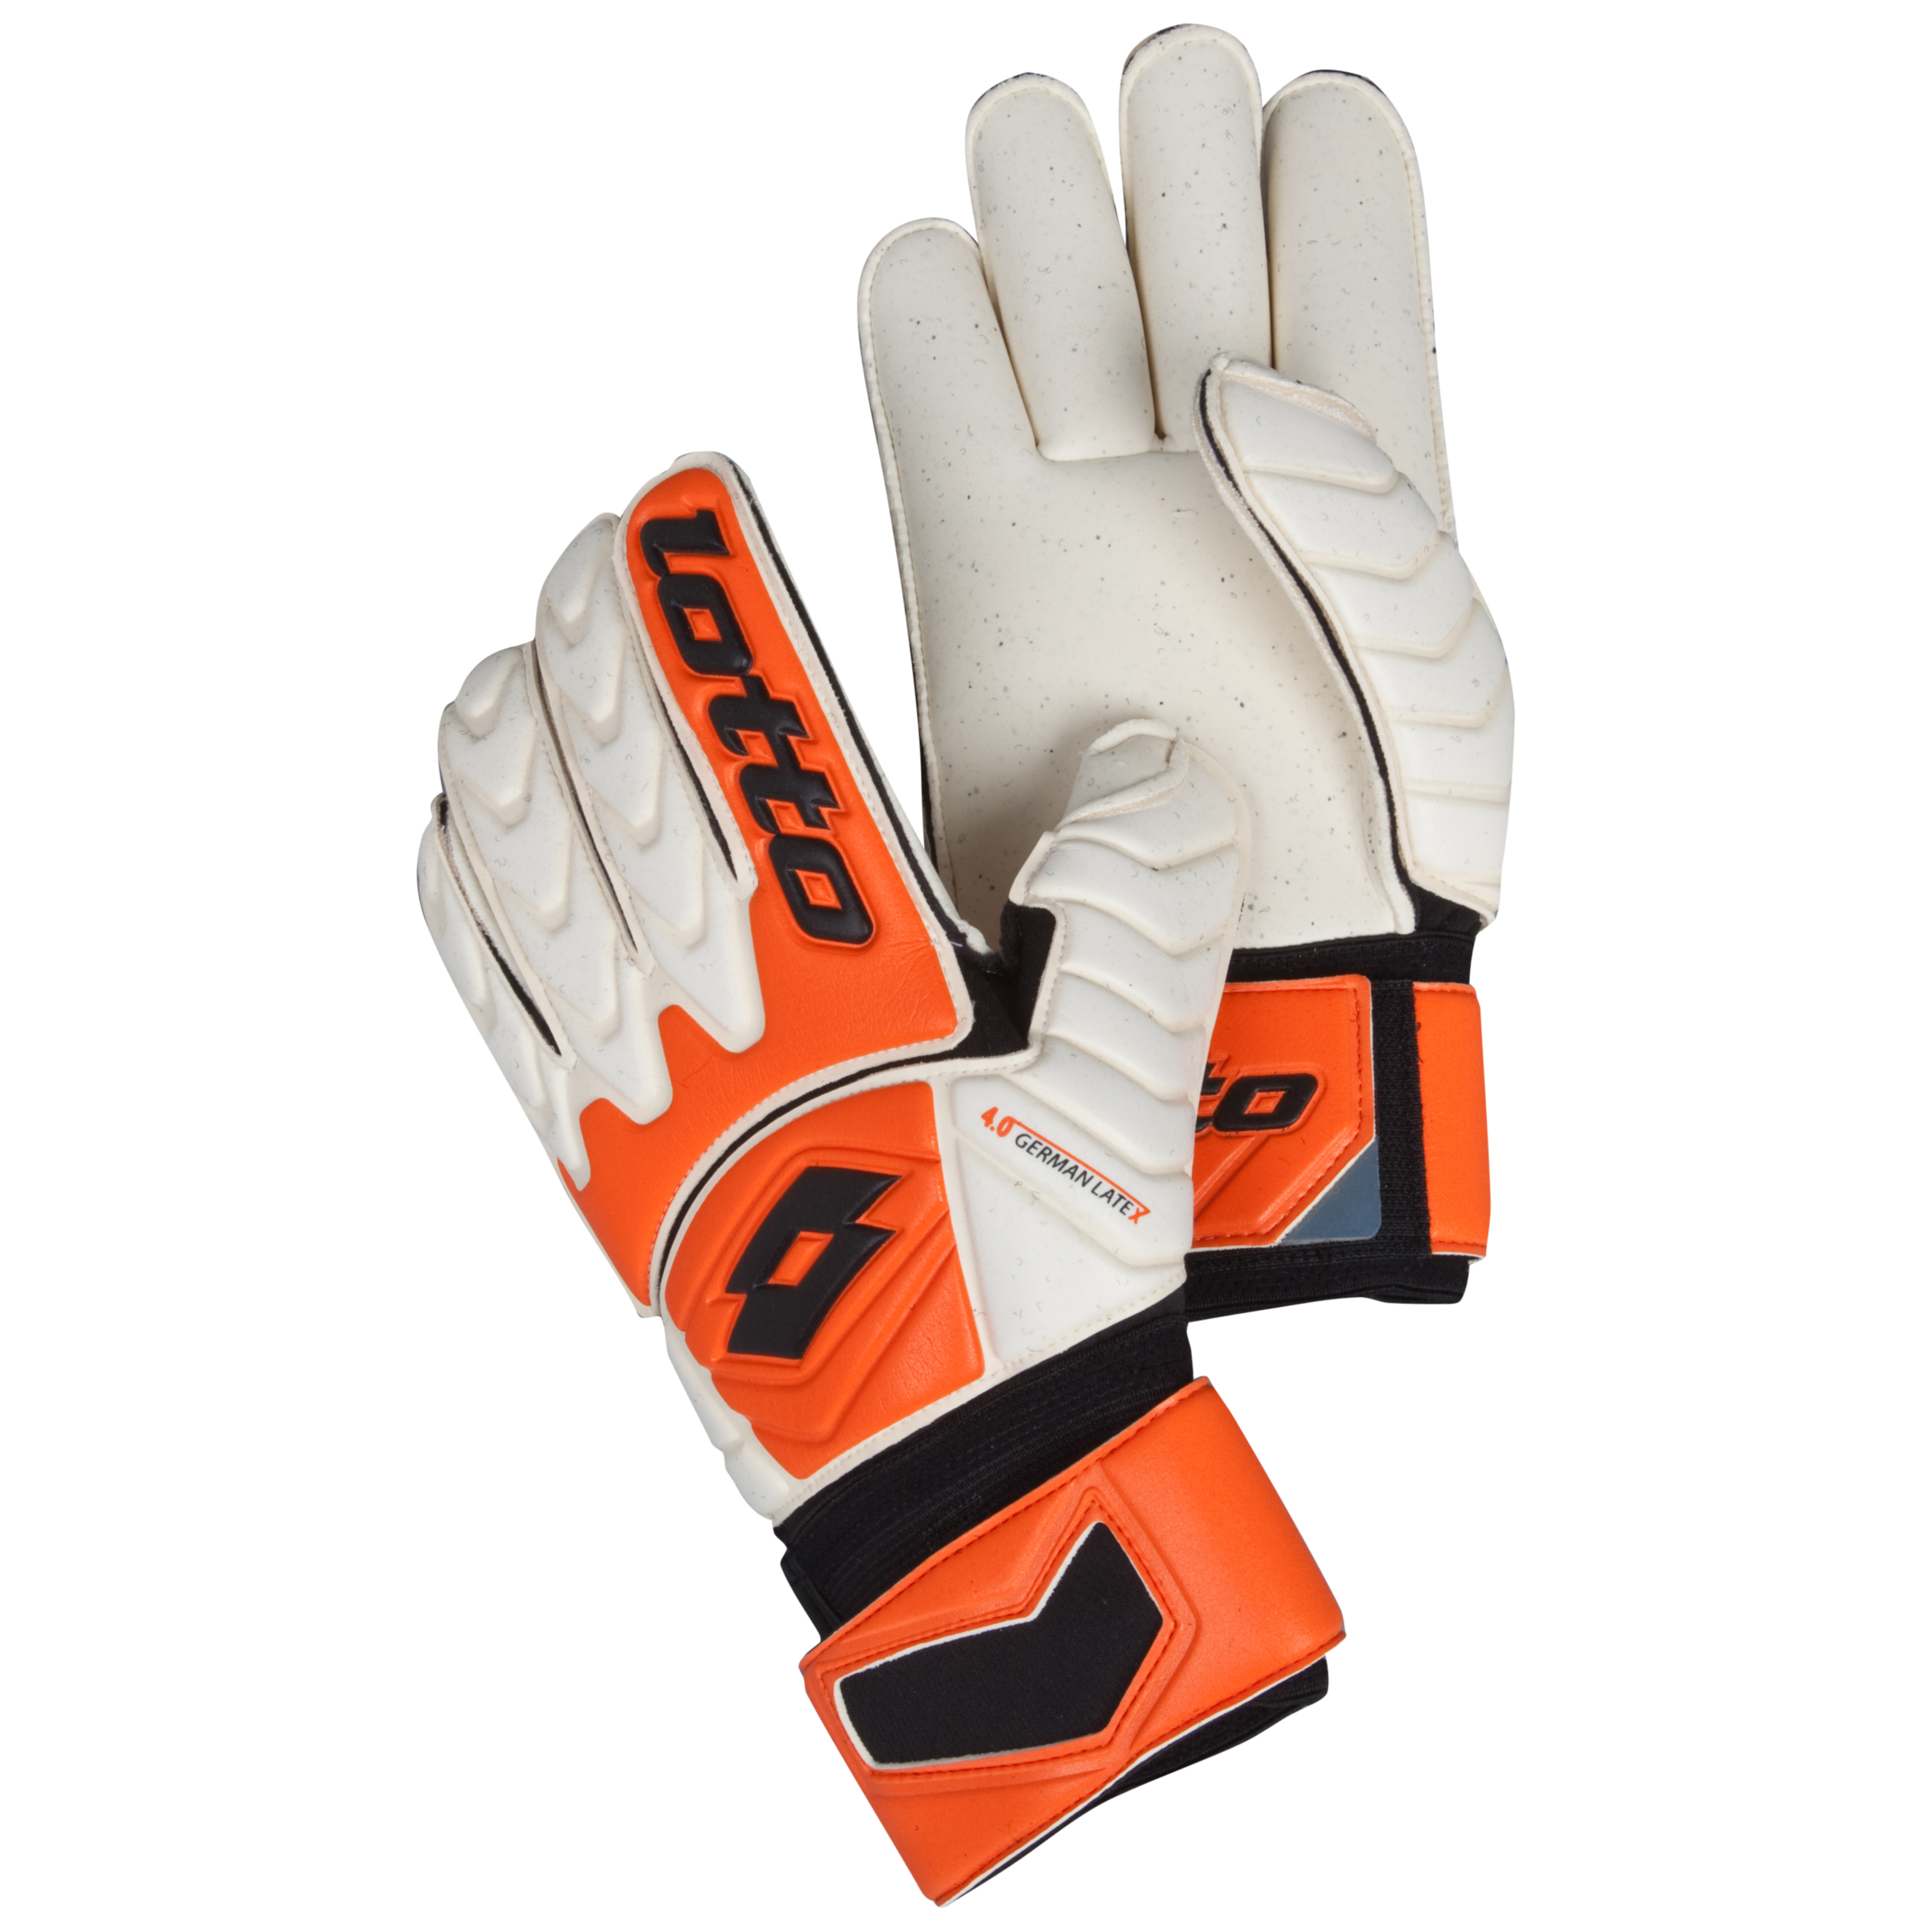 Lotto Gripster GK250 Goalkeeper Gloves